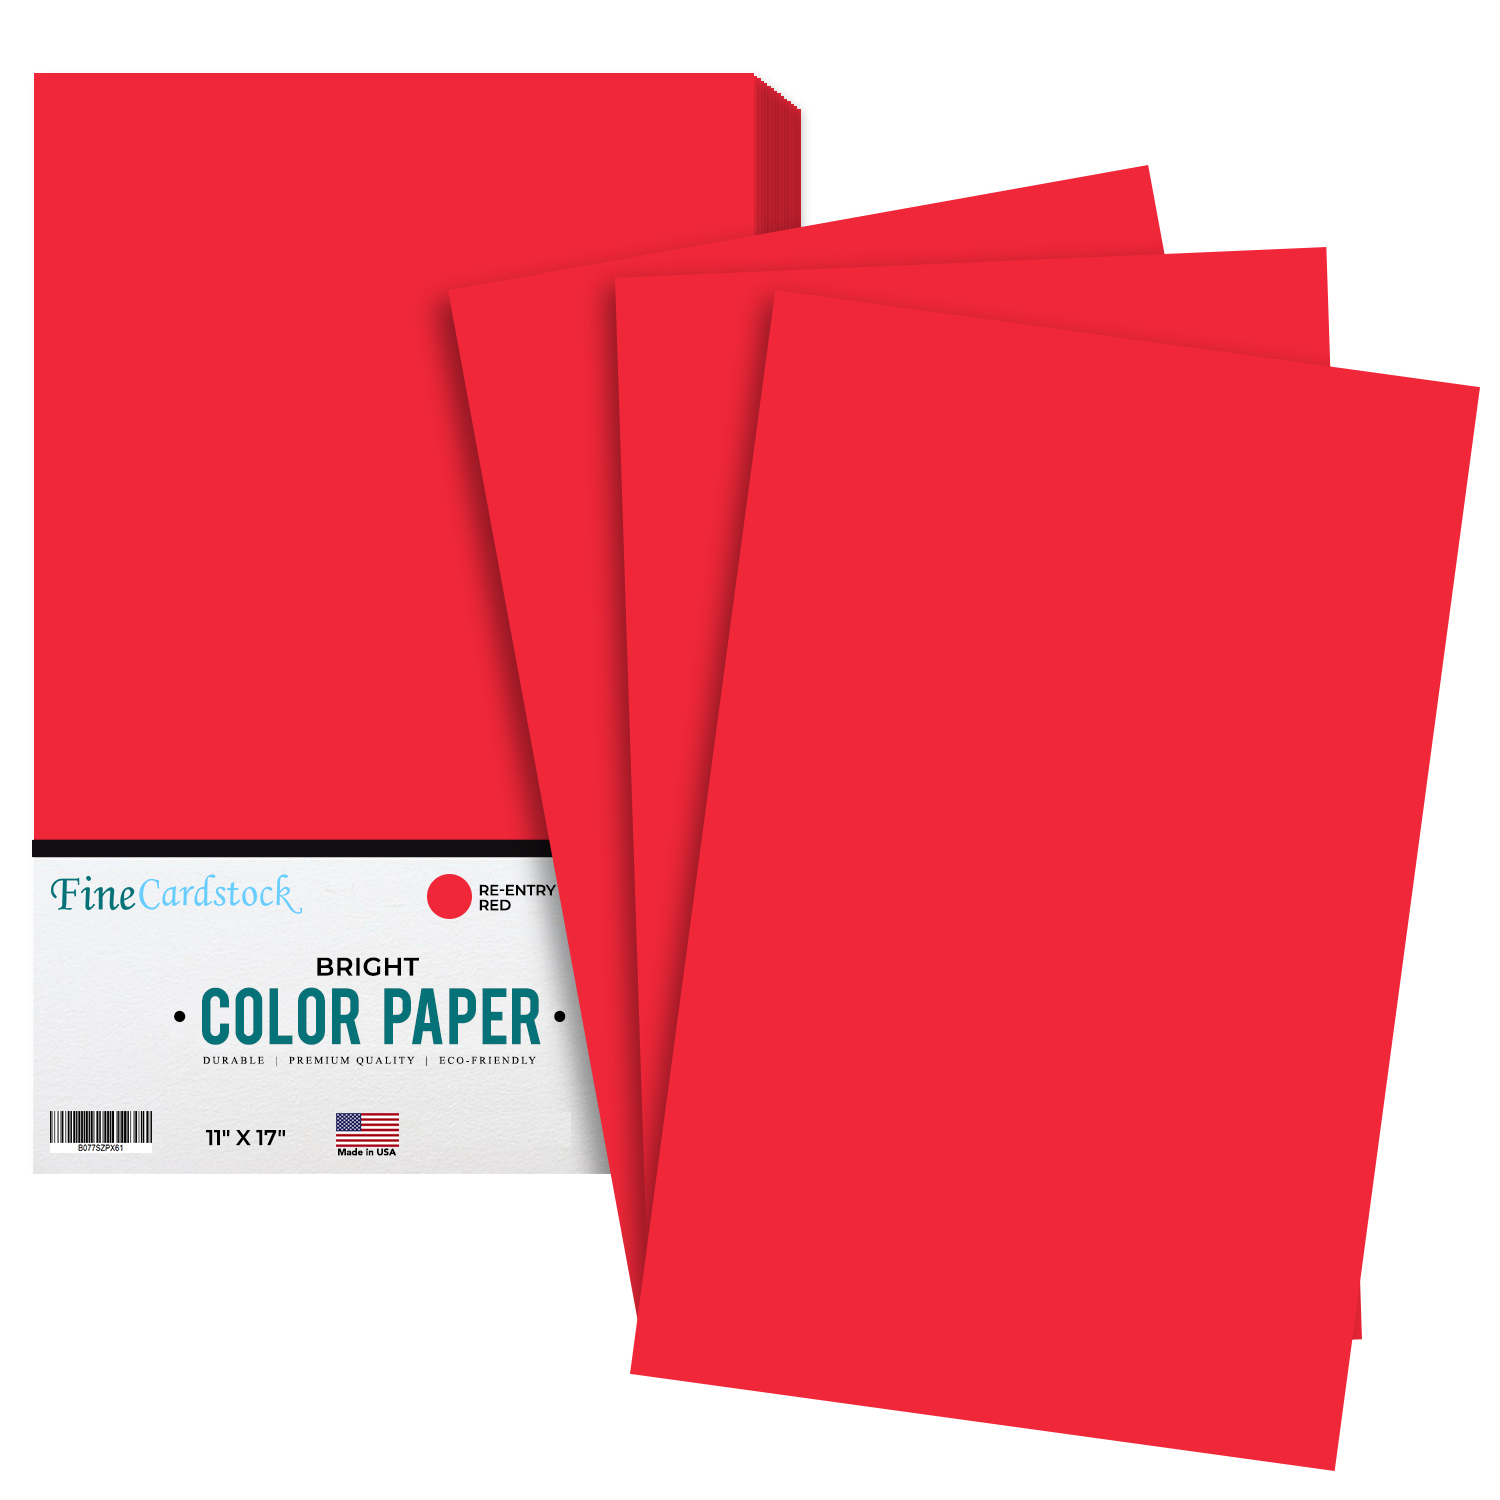 11 X 17 Color Paper Black Bulk And Wholesale Fine Cardstock